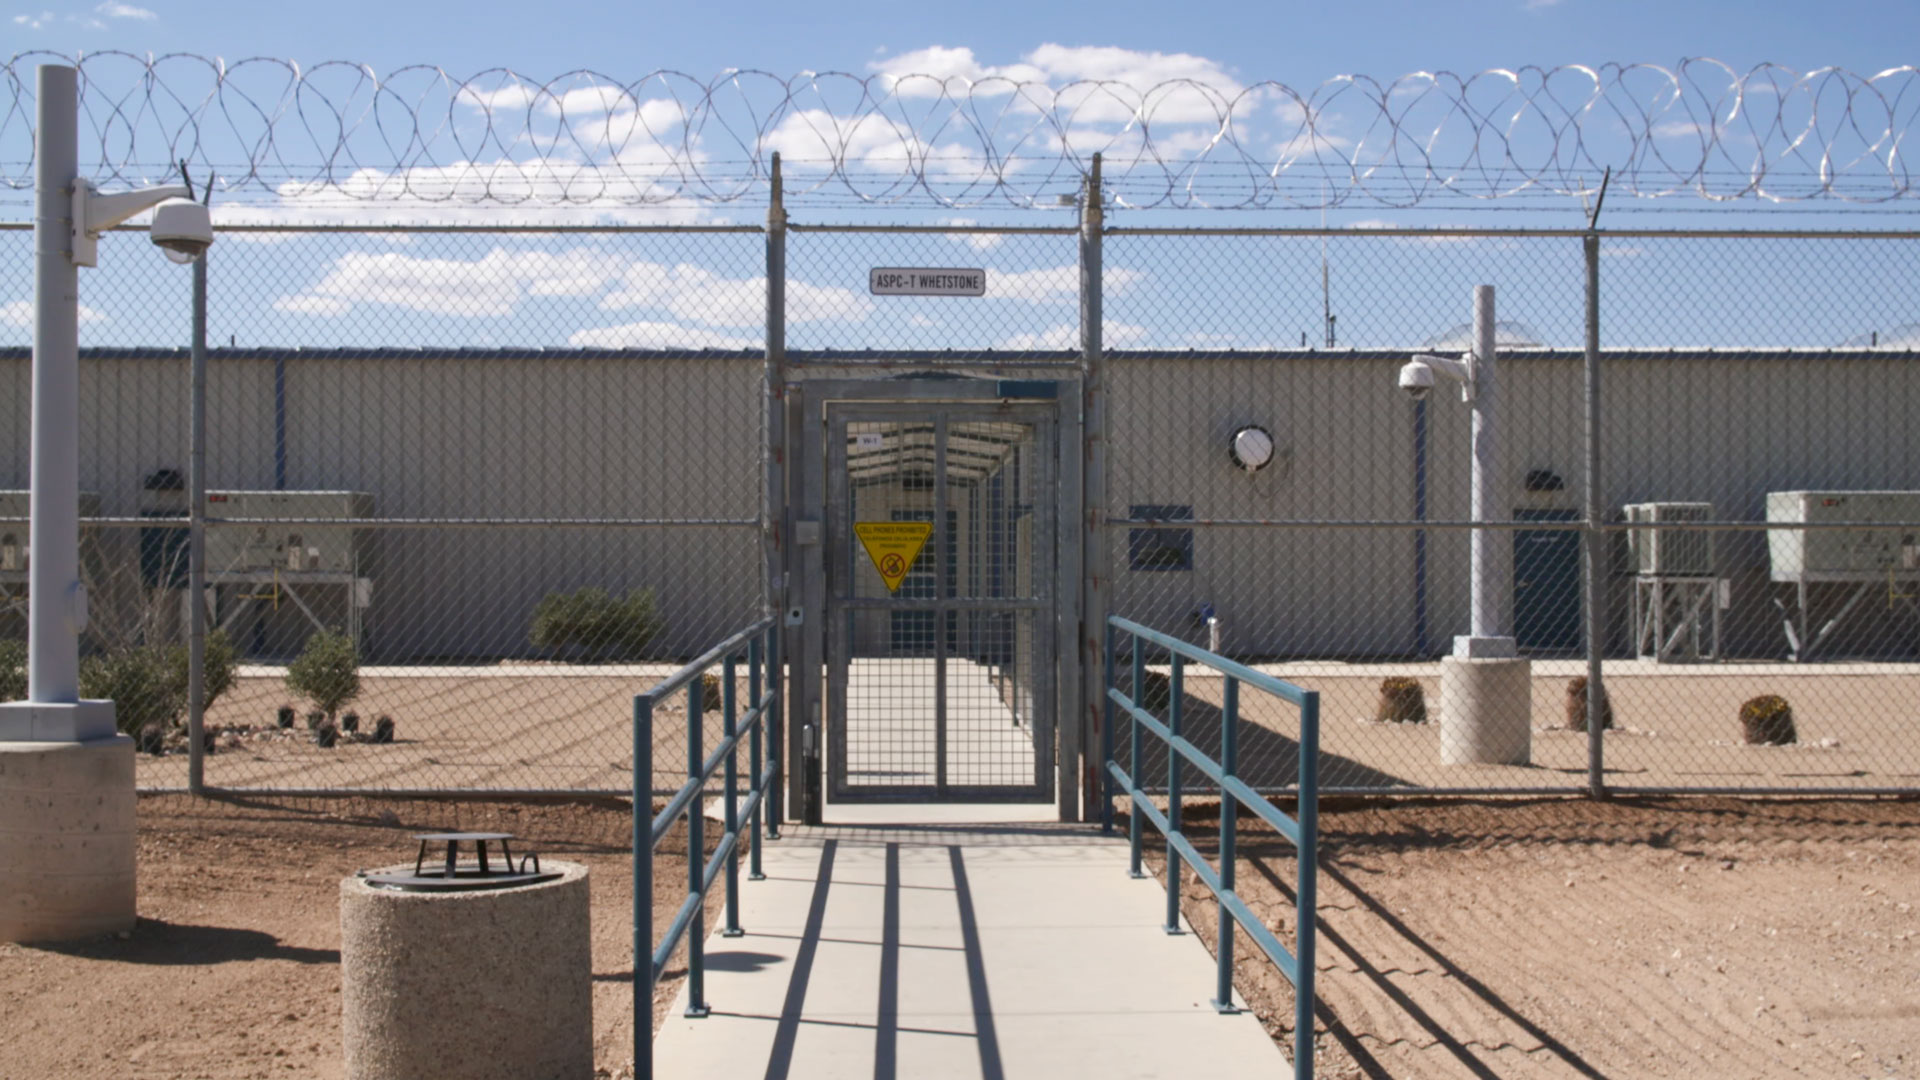 Entrance of an Arizona state prison in 2017.